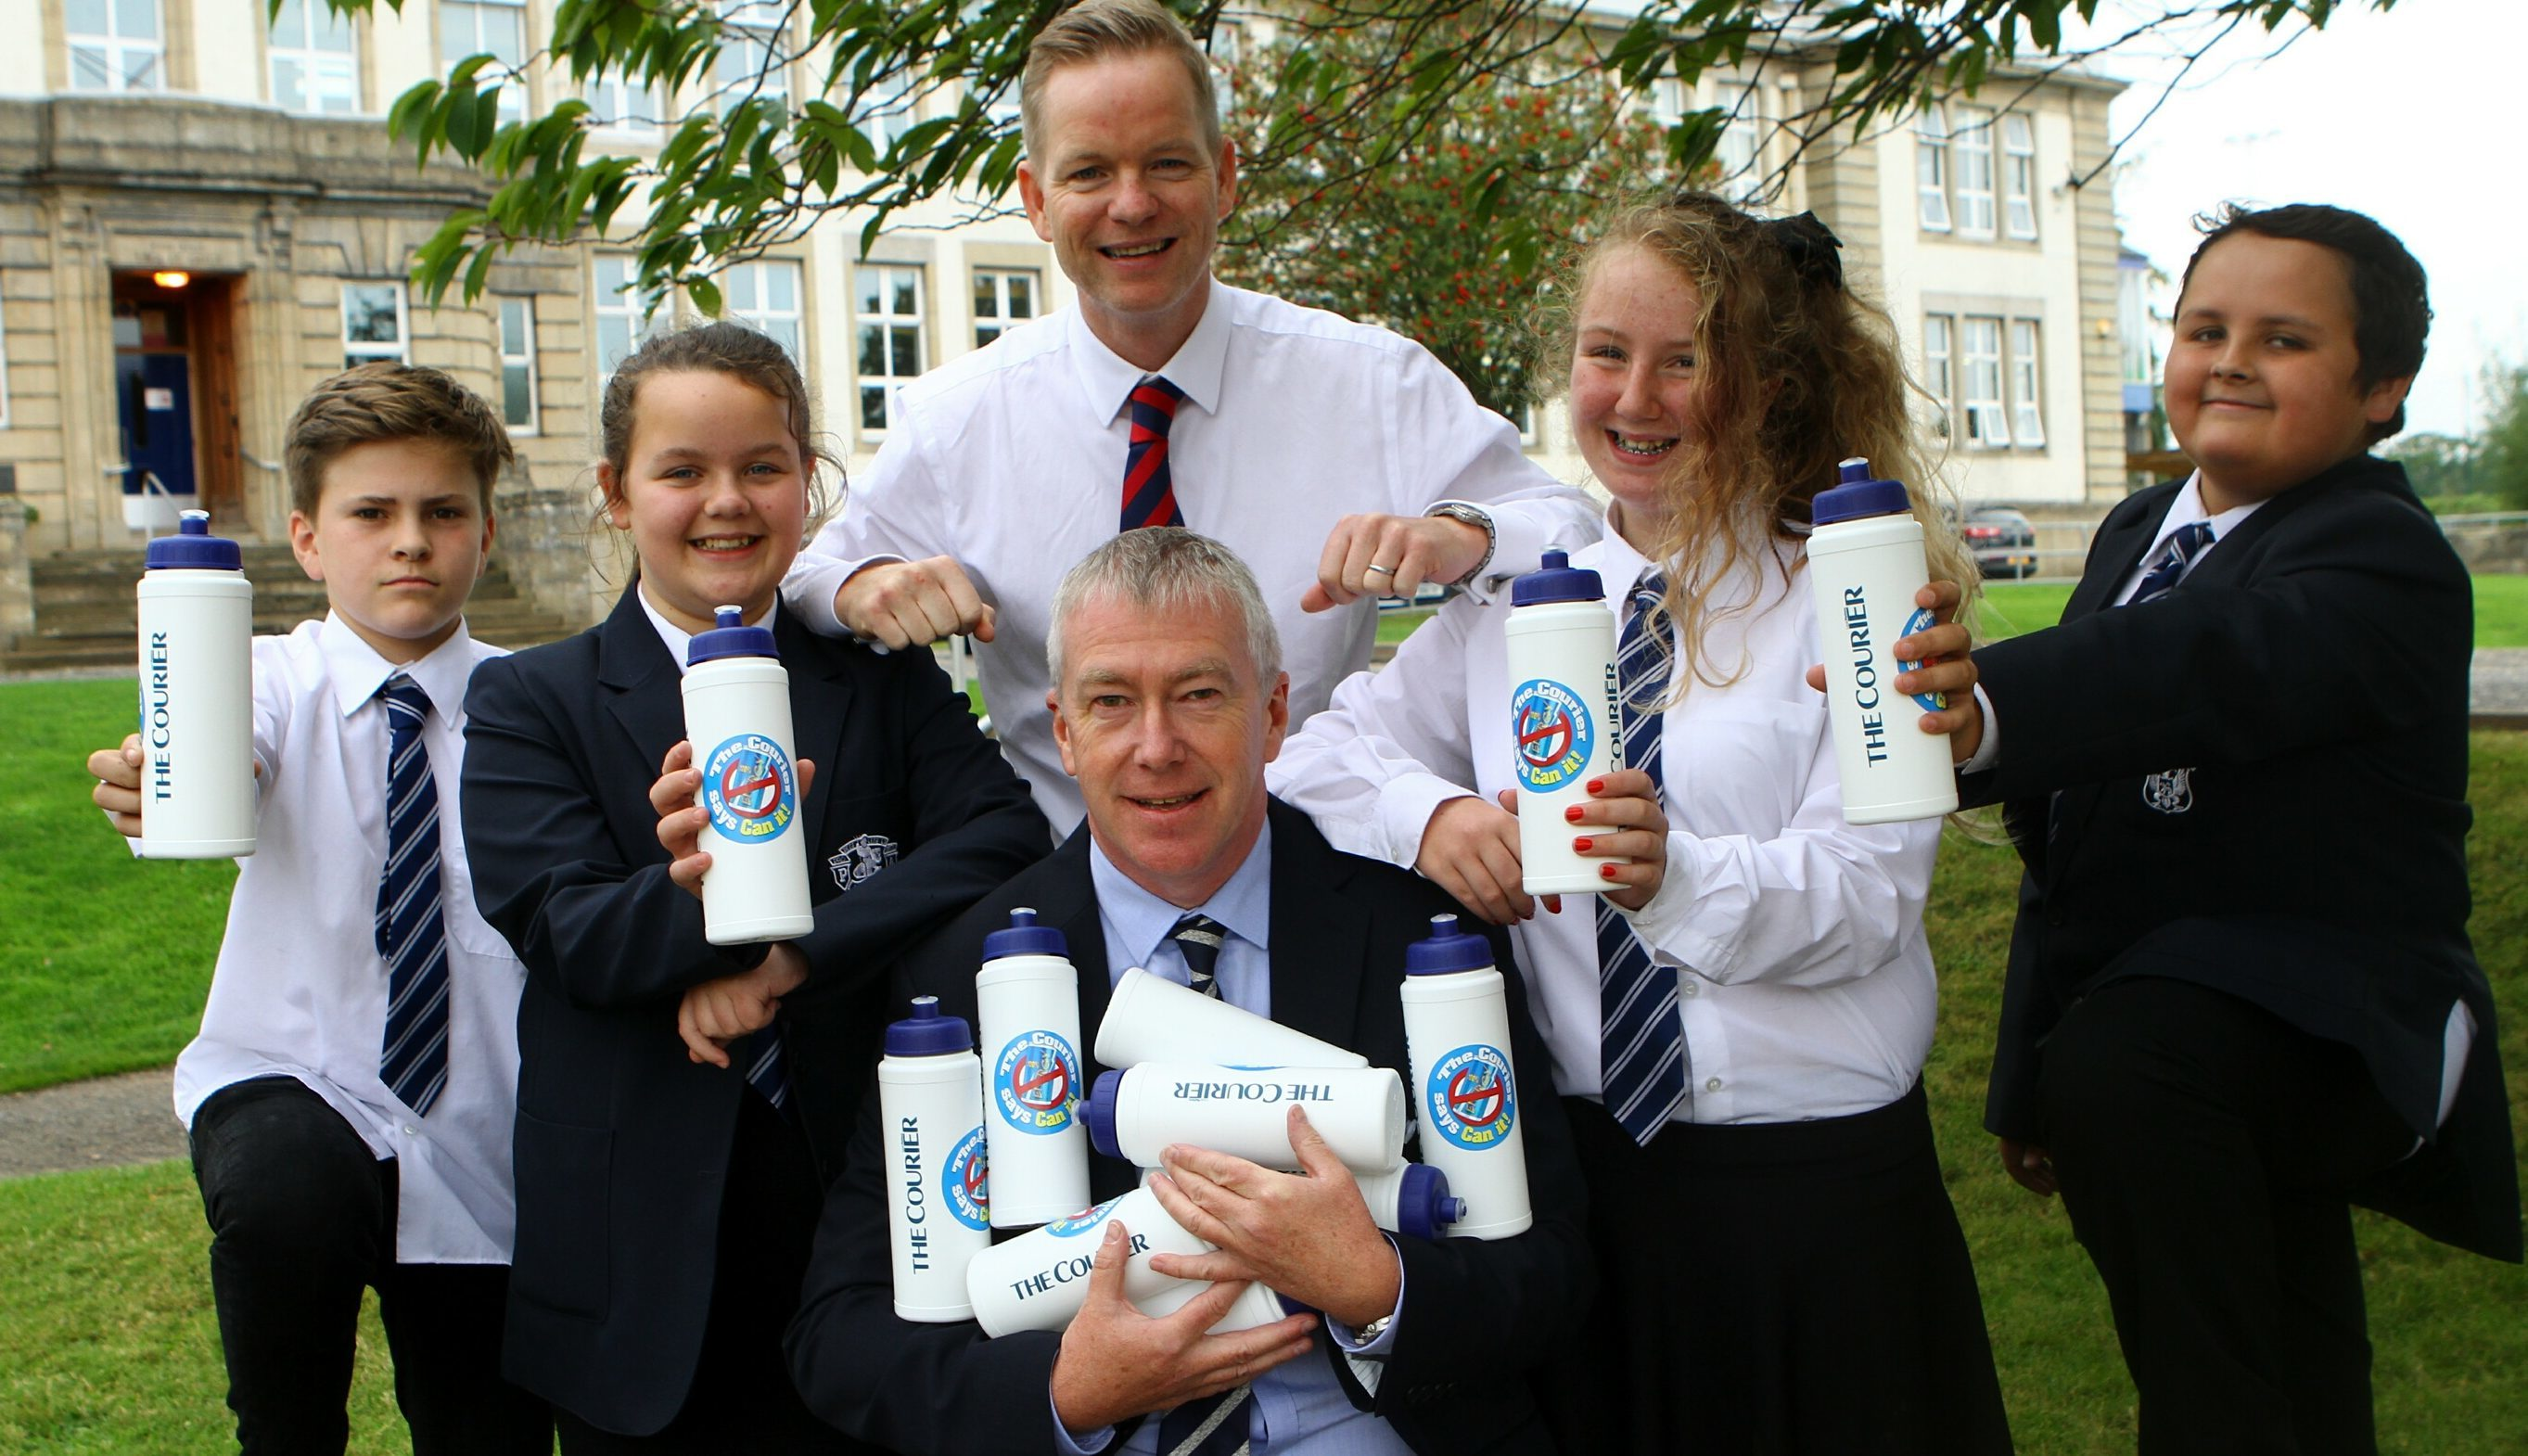 Richard Burdge of The Courier hands the bottles to head teacher Johnny Lothian and pupils